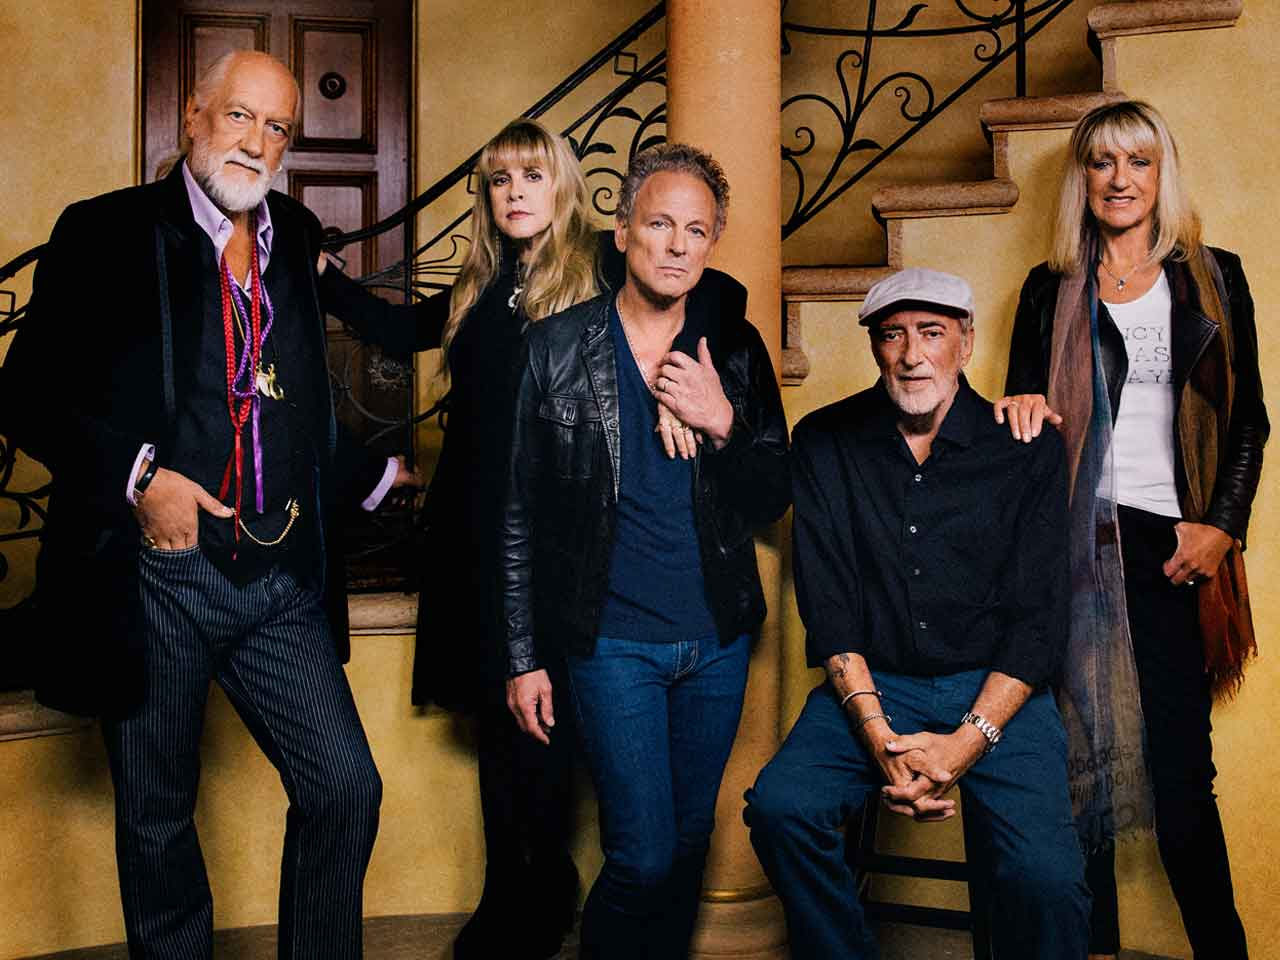 A portrait of the band Fleetwood Mac